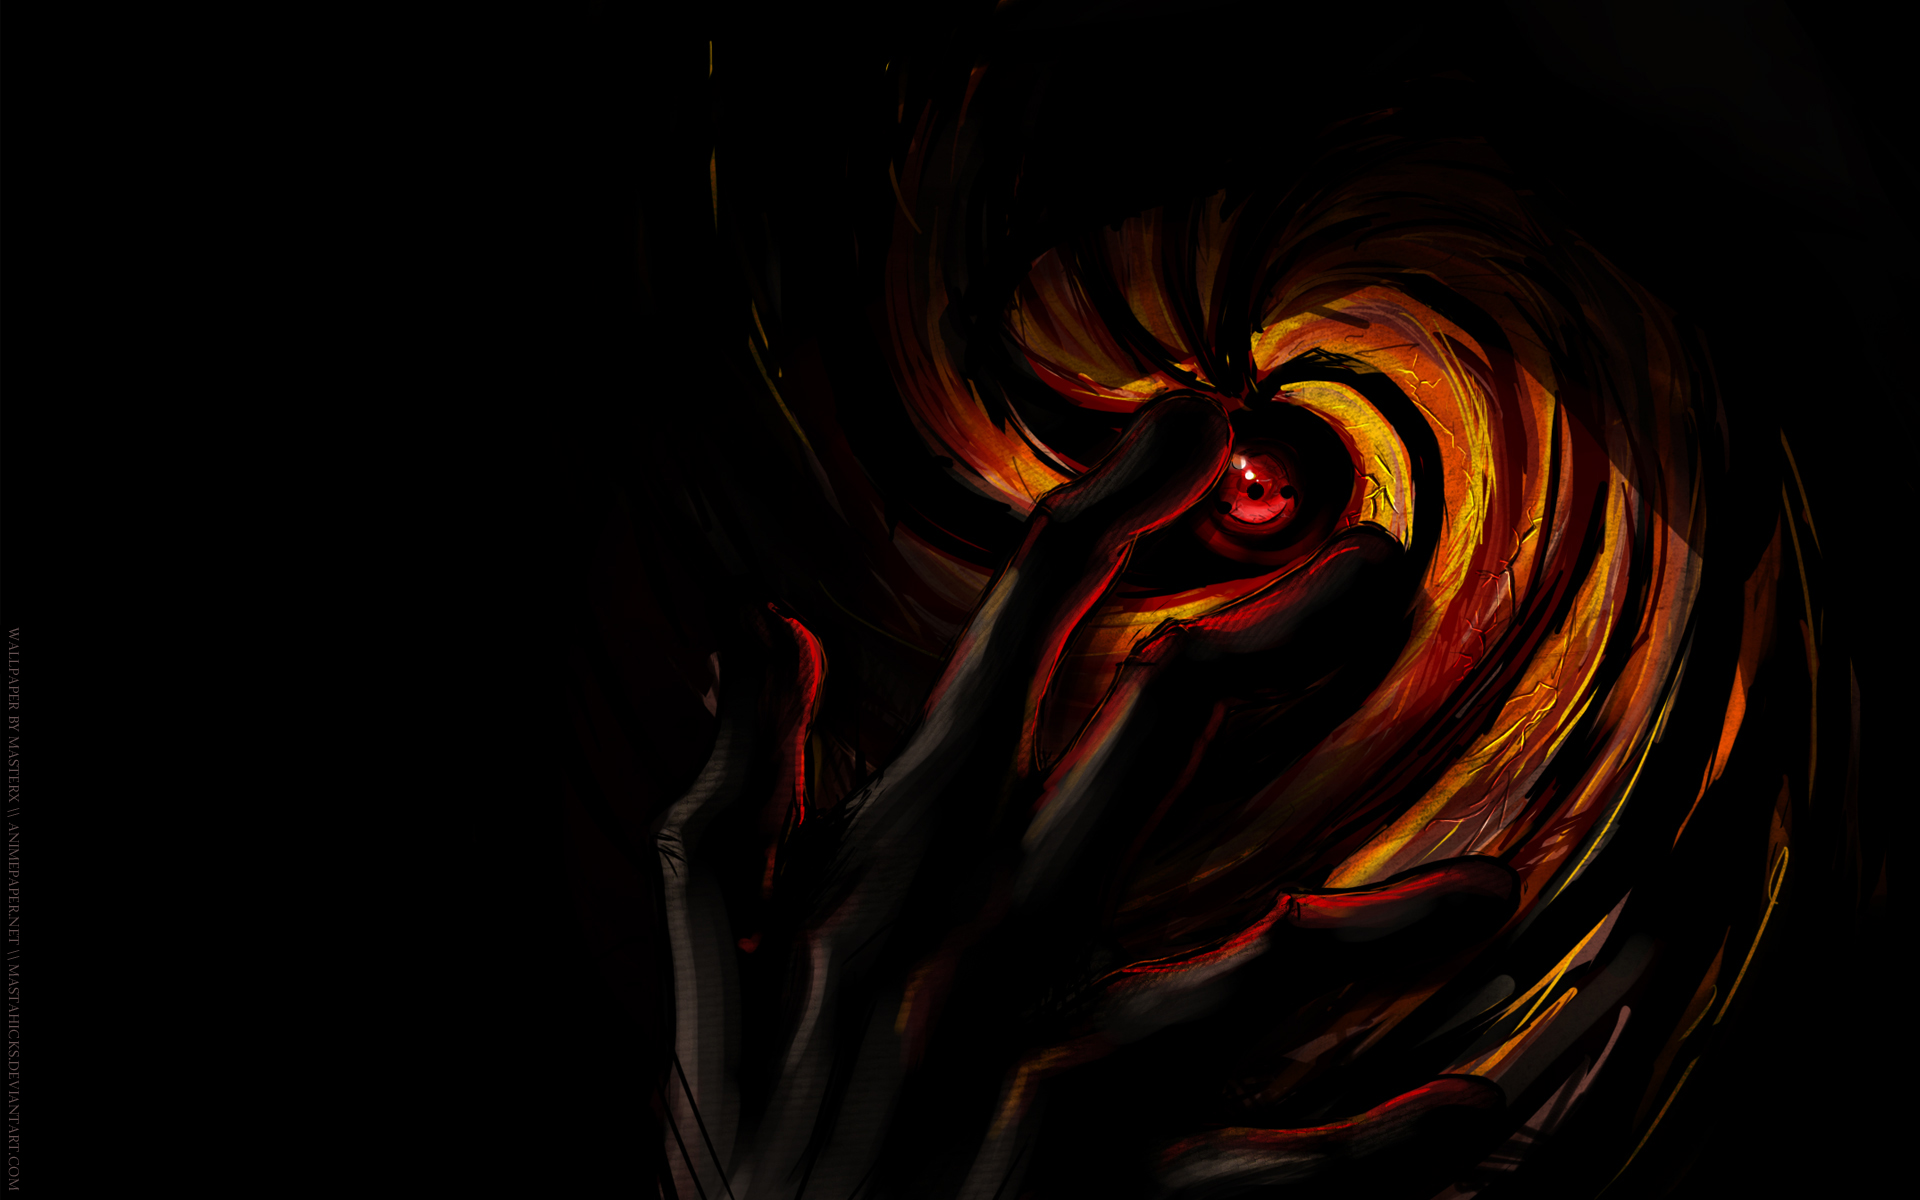 Hd wallpaper net - Anime Naruto Obito Uchiha Wallpaper